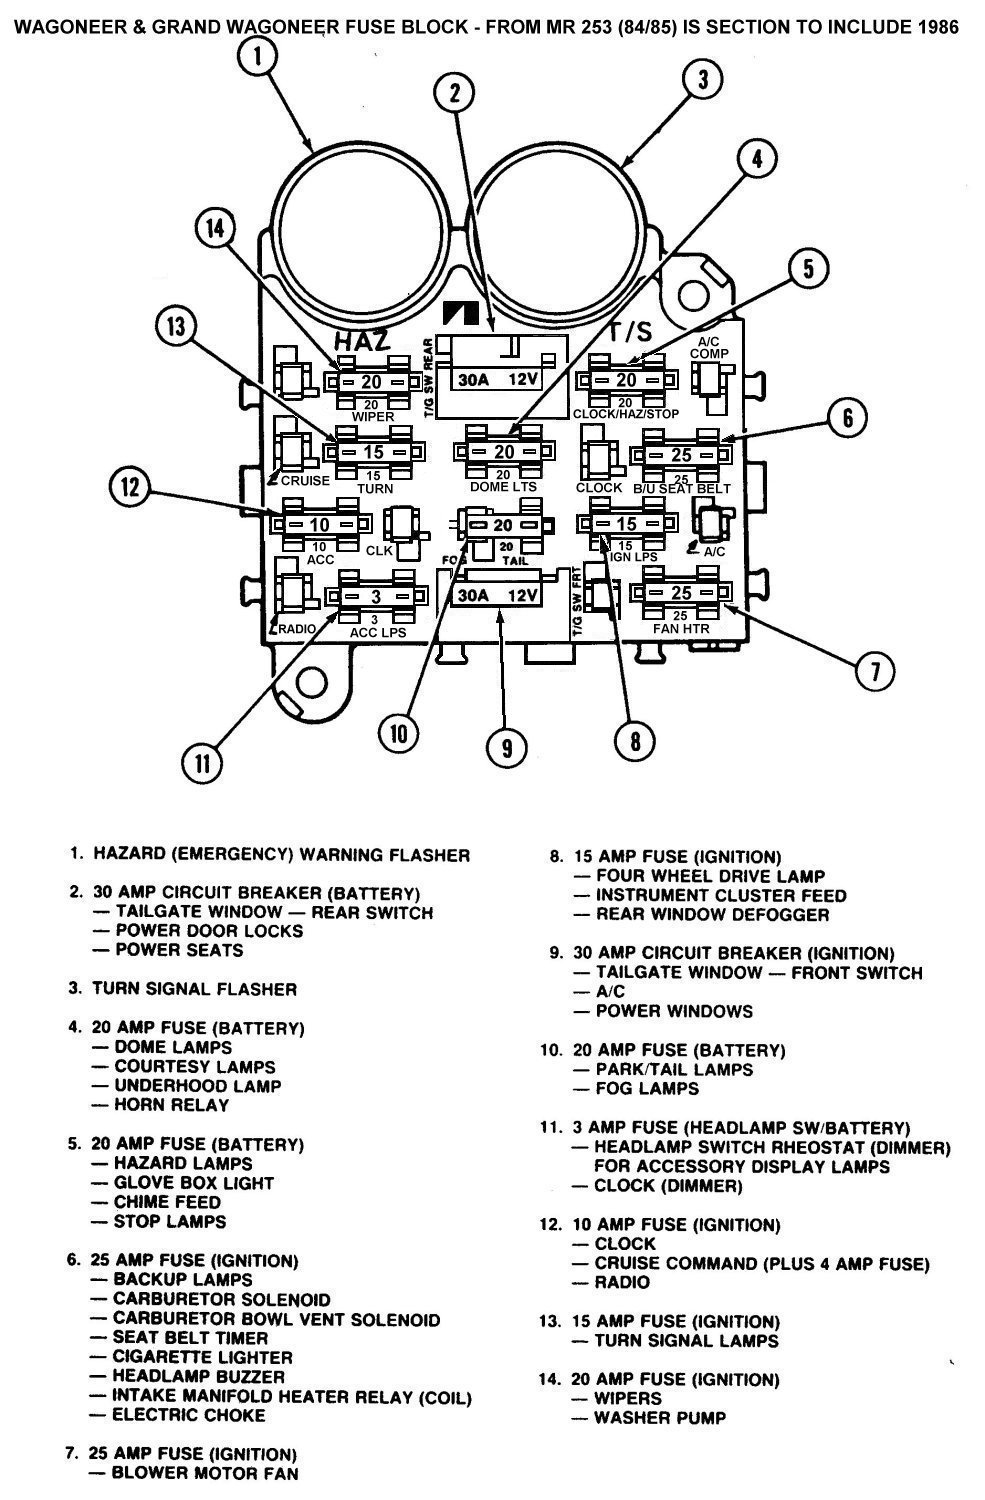 tom 'oljeep' collins fsj wiring page 1982 Jeep Cj7 Fuse Box Diagram 1982 Jeep Cj7 Fuse Box Diagram #5 1982 jeep cj7 fuse box diagram